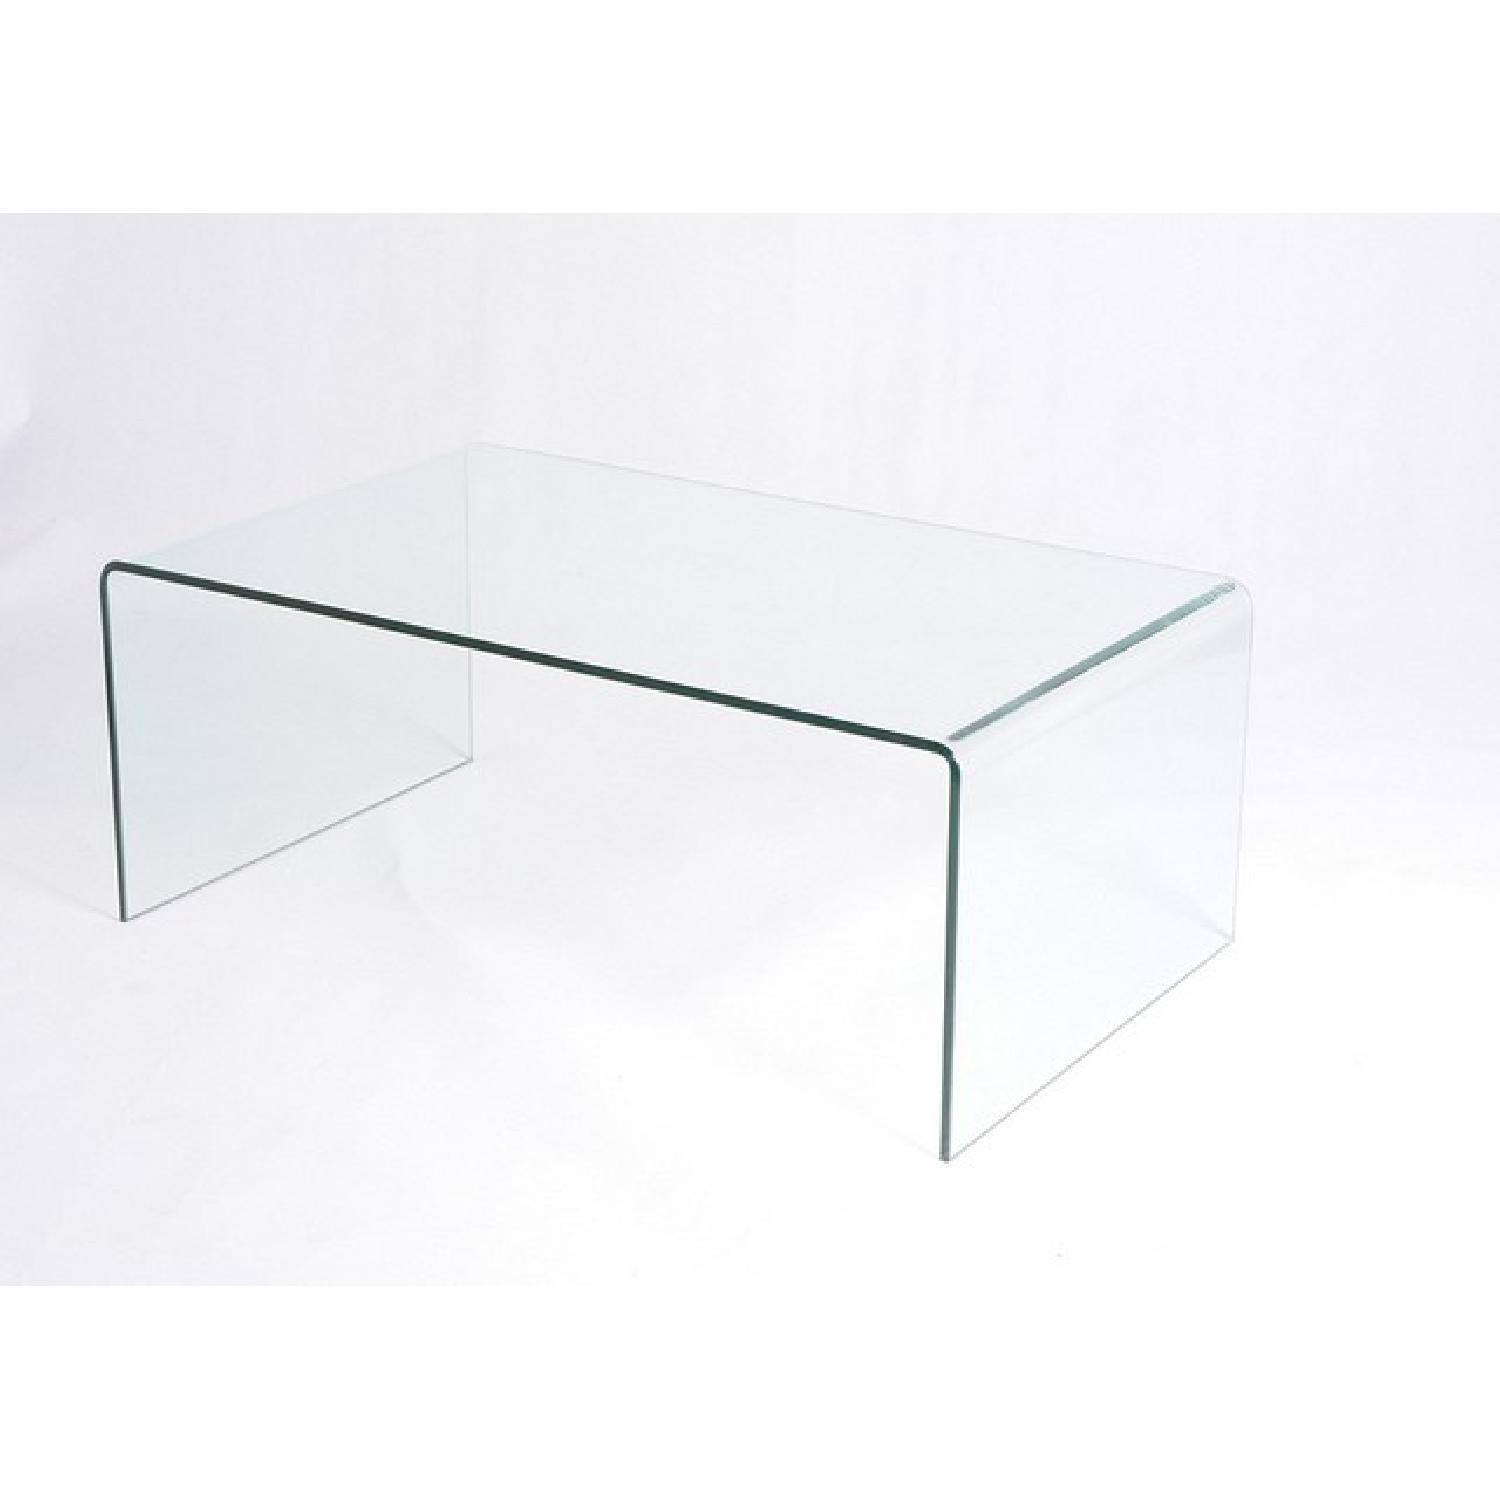 Solid Glass Waterfall Coffee Table AptDeco